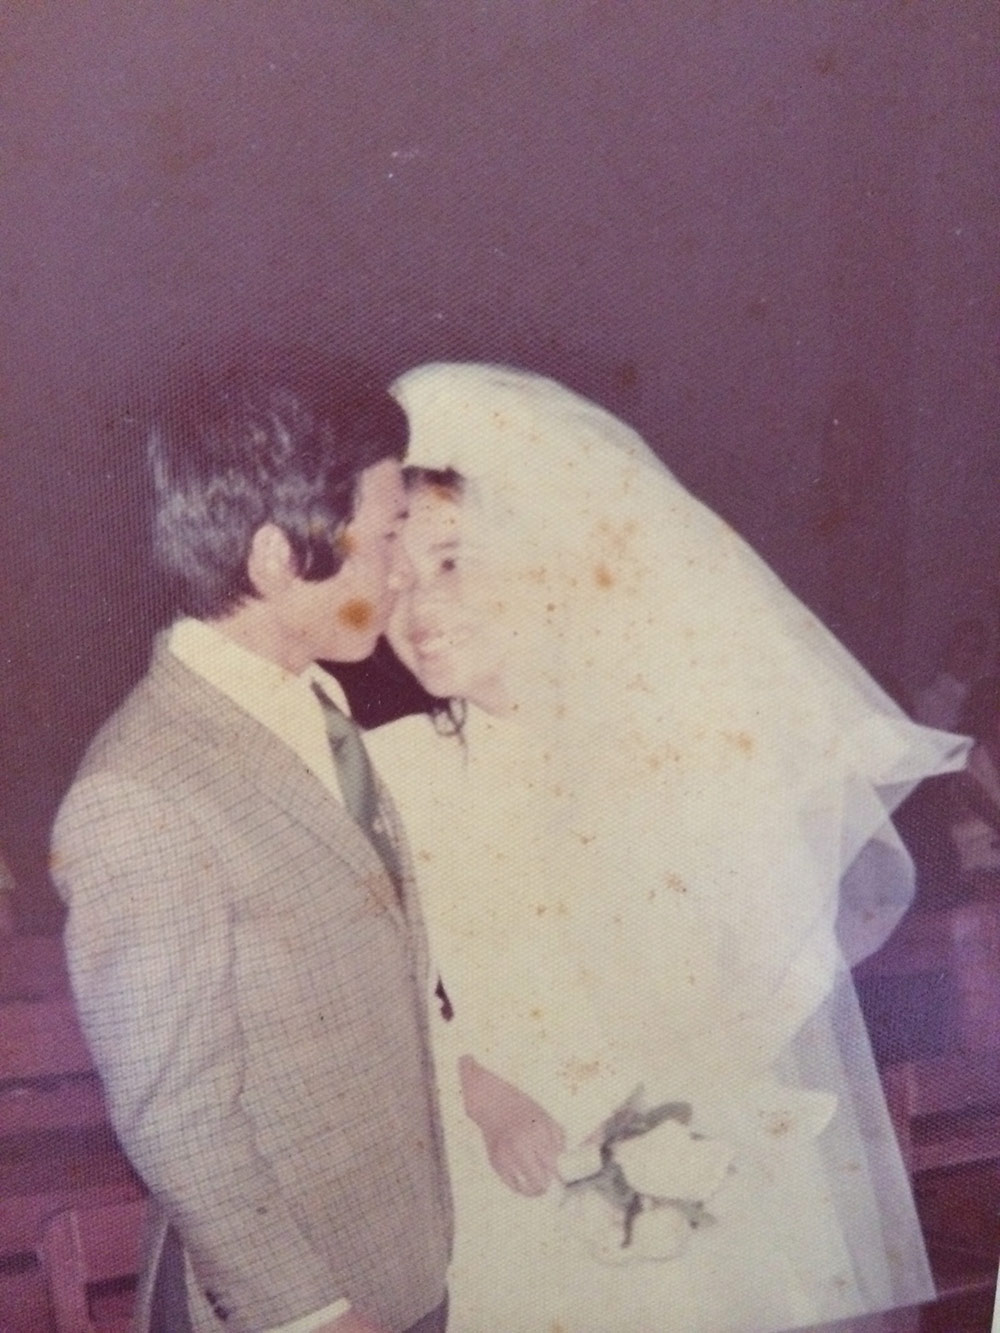 My dad and mom on their wedding day